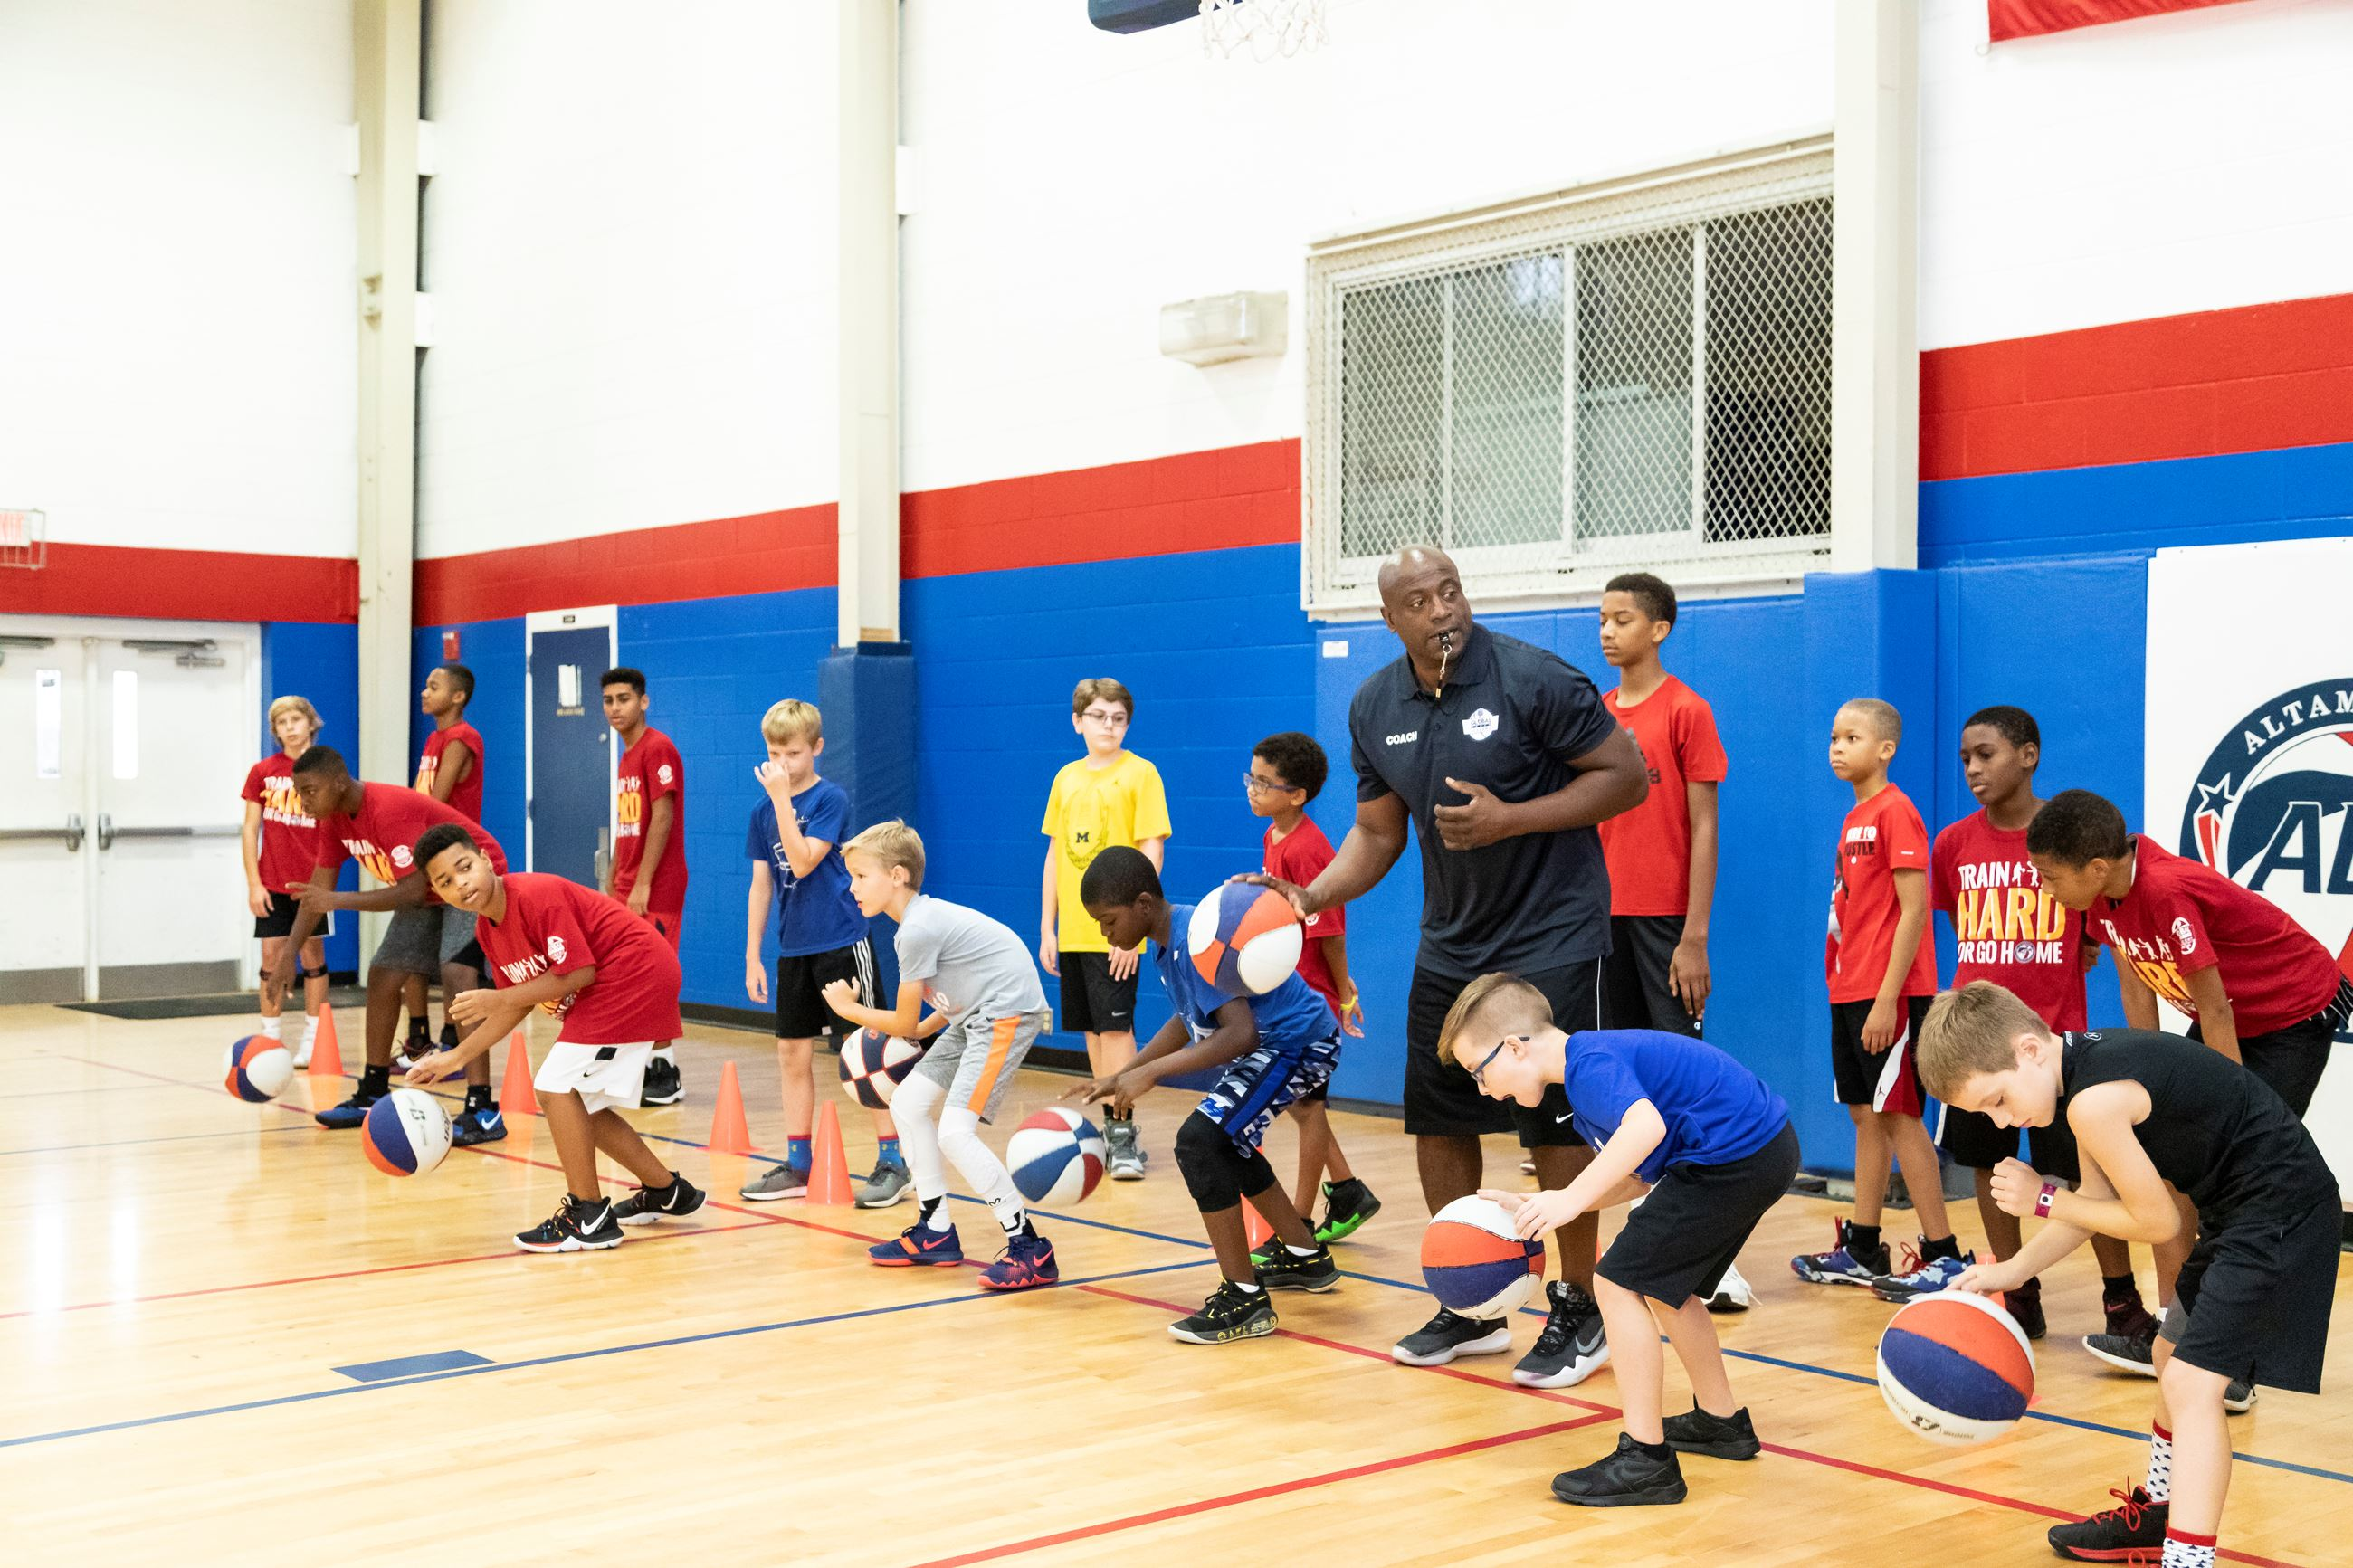 Kids Running Drills at Basketball Camp